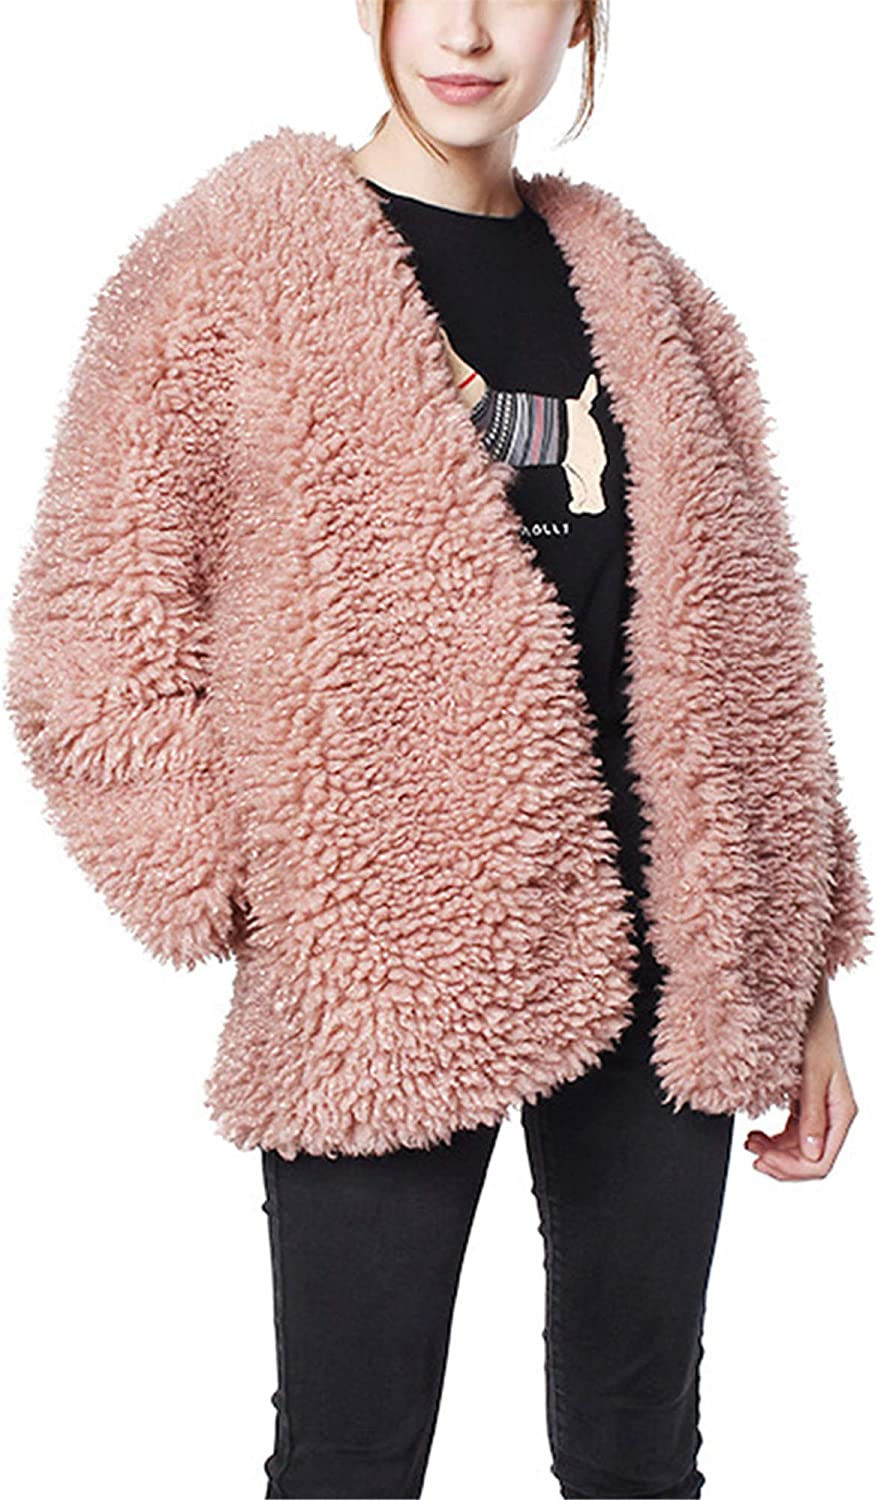 Allonly Women's Fashion Round Collar Faux Fur Long Sleeves Oversize Open Front Warm Winter Coat